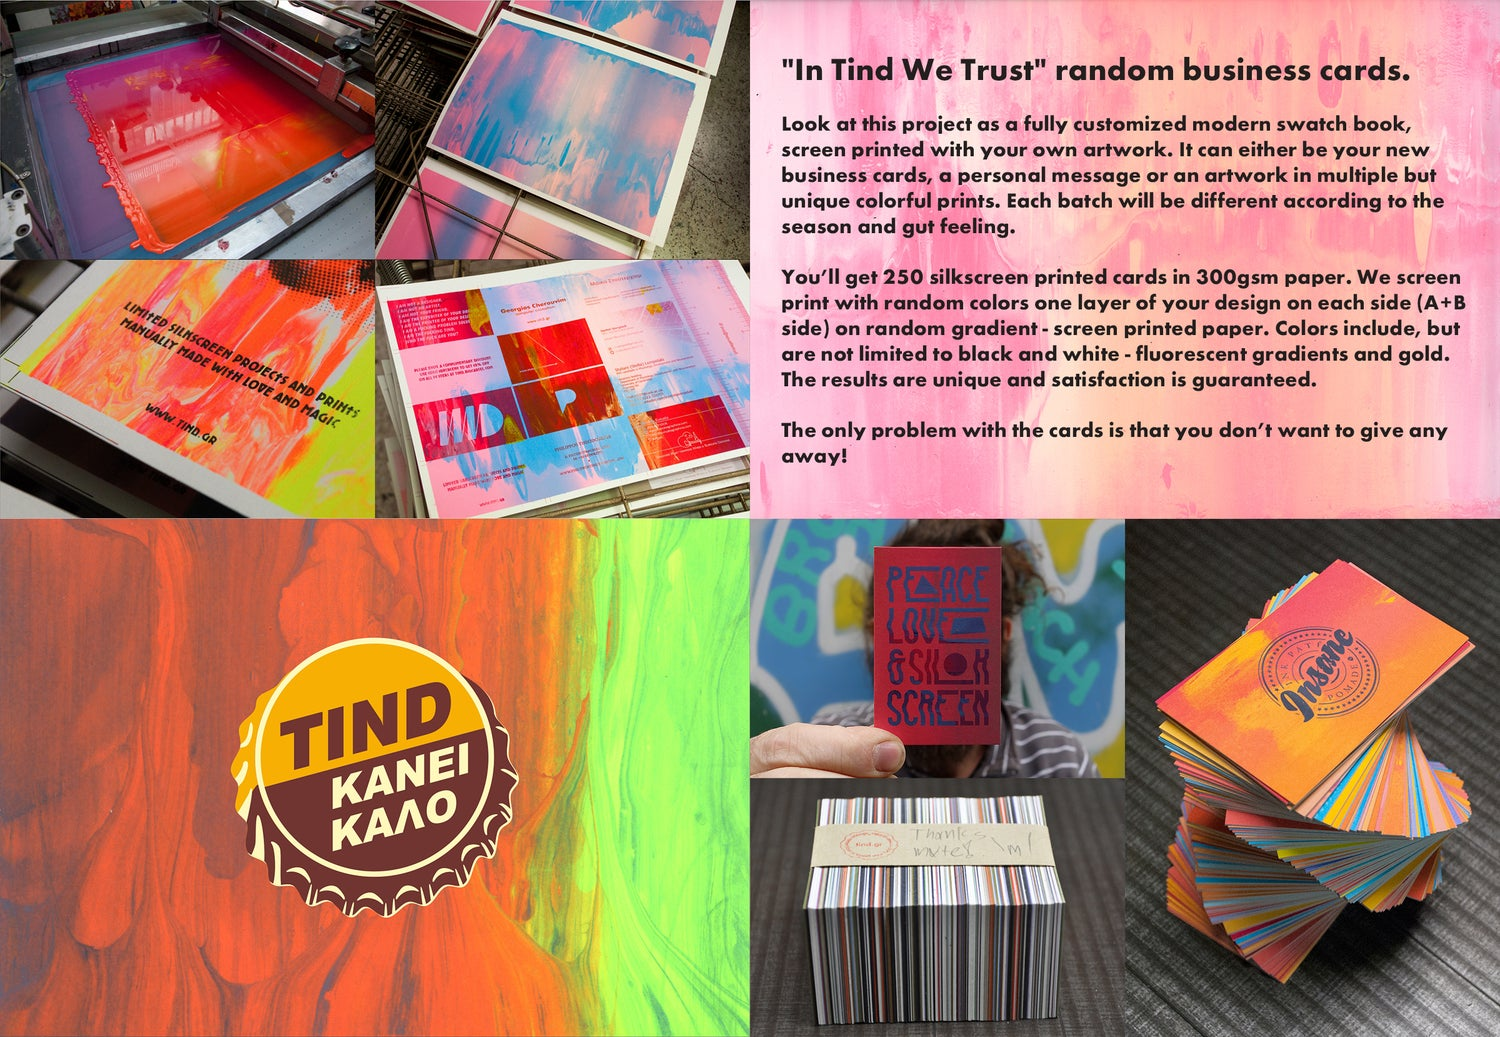 Tind in tind we trust random business card prints in tind we trust random business card prints magicingreecefo Images